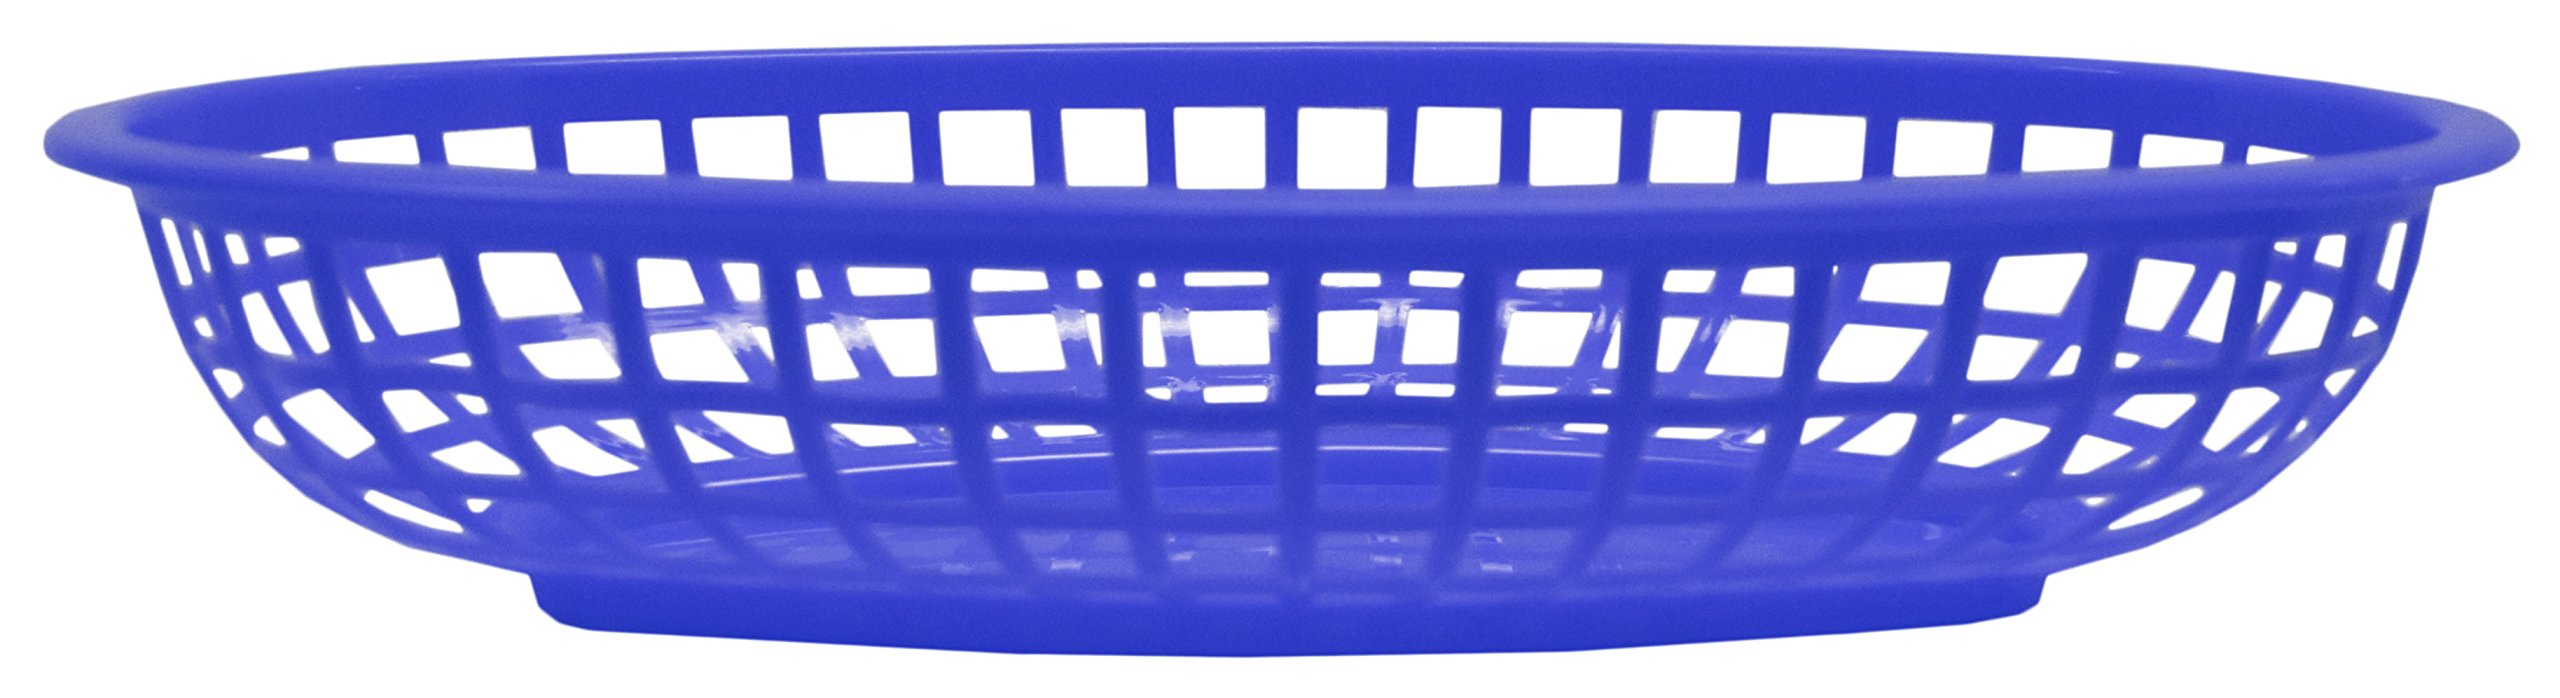 Set of 12 Blue Oval Fast Food / Deli Baskets, 9.25 by 5.67-Inch, Blue (12) by Regent (Image #4)